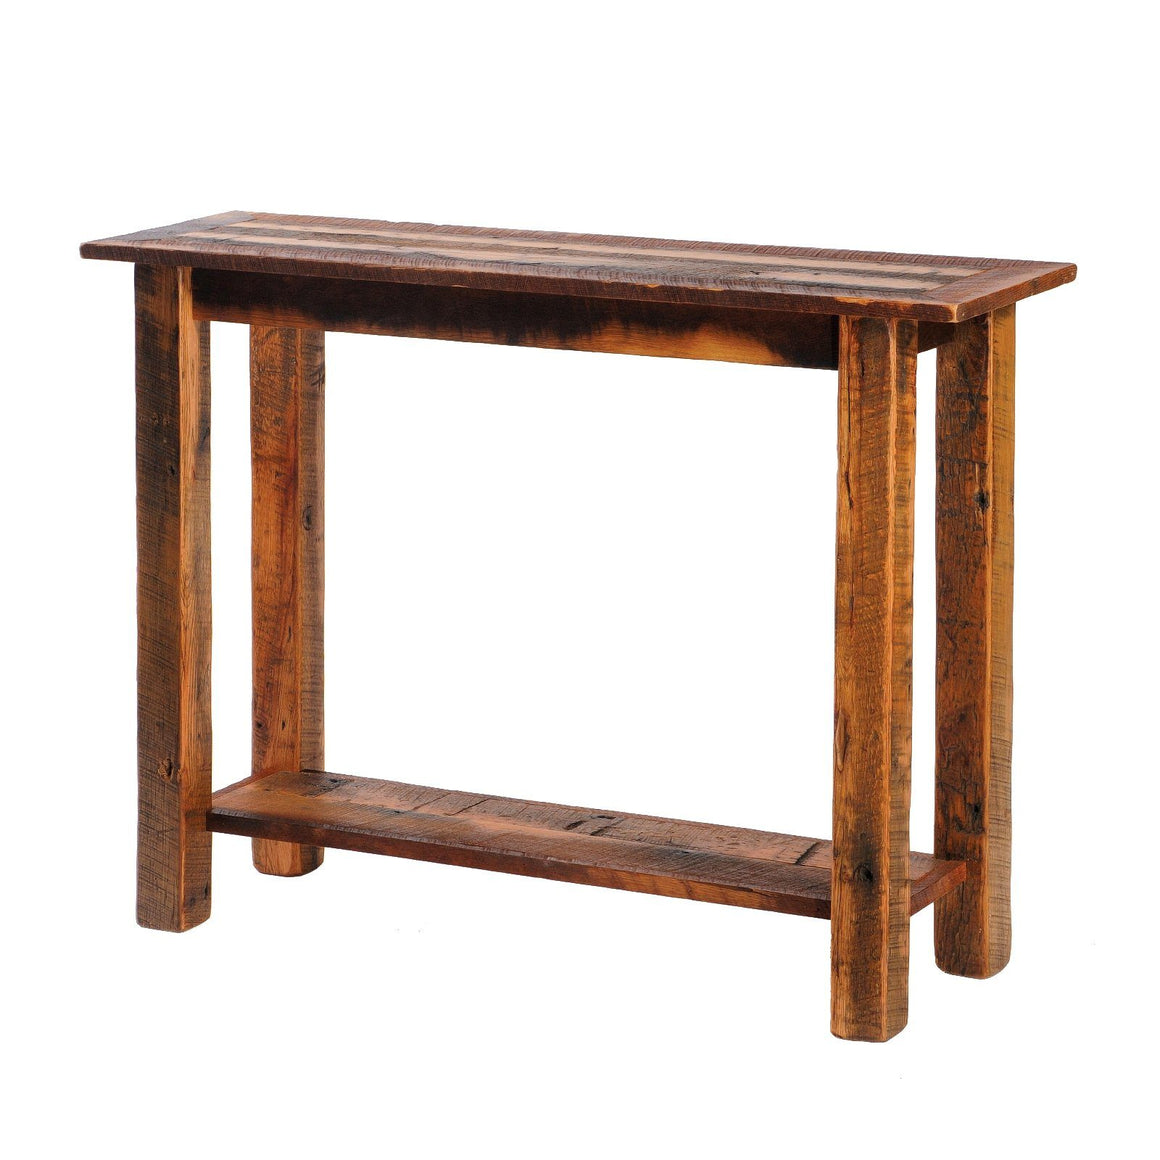 "Barnwood Open Sofa Table with Shelf - Reclaimed Antique Oak - 48"" - Rustic Deco Incorporated"